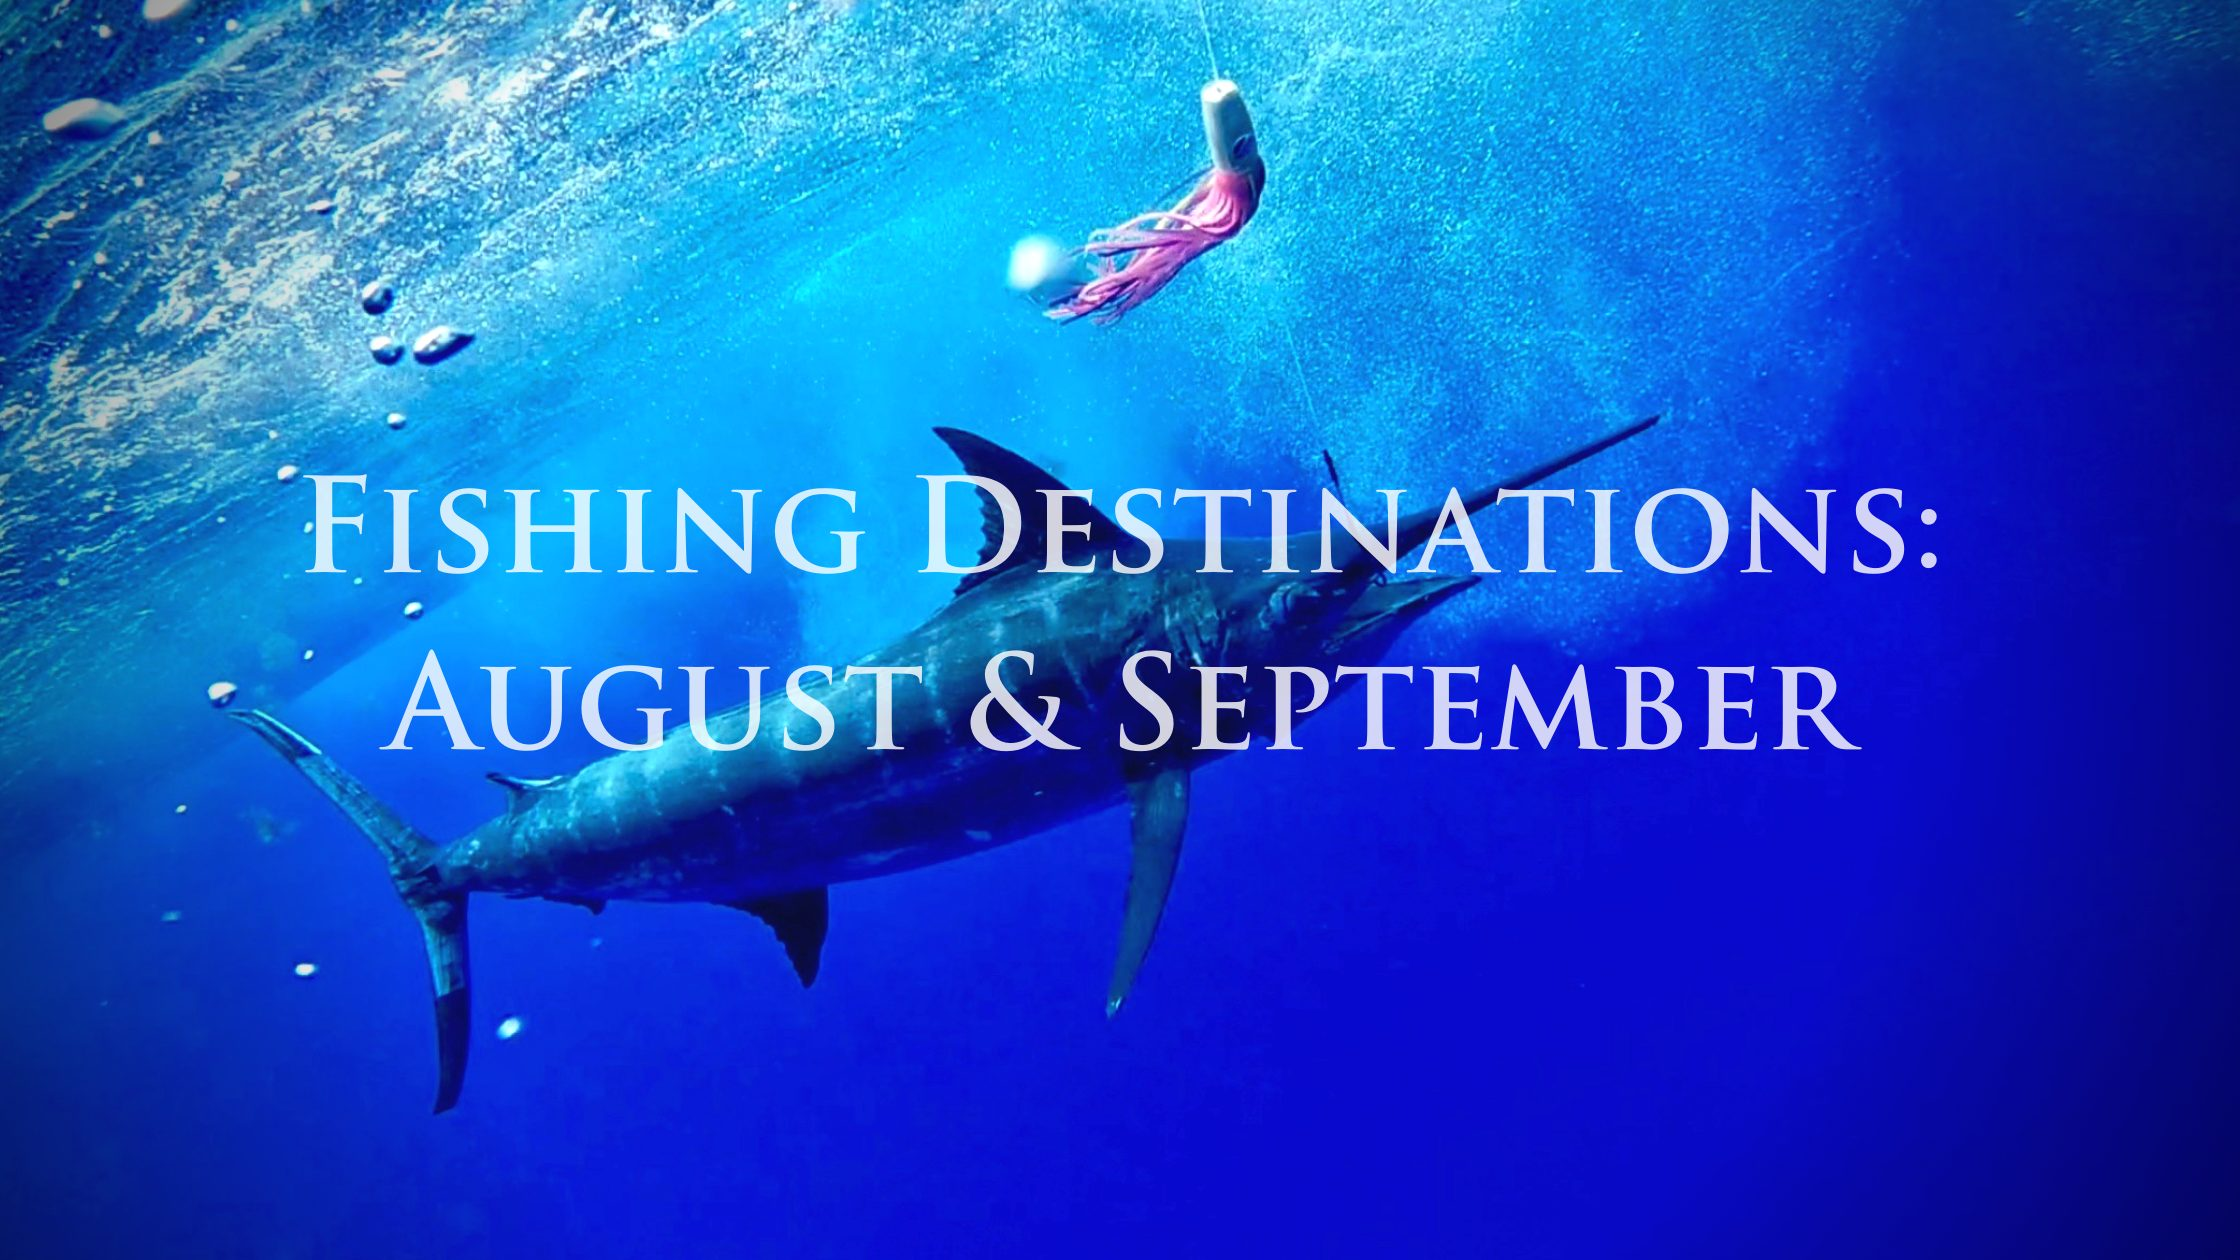 Fishing Destinations in August and September